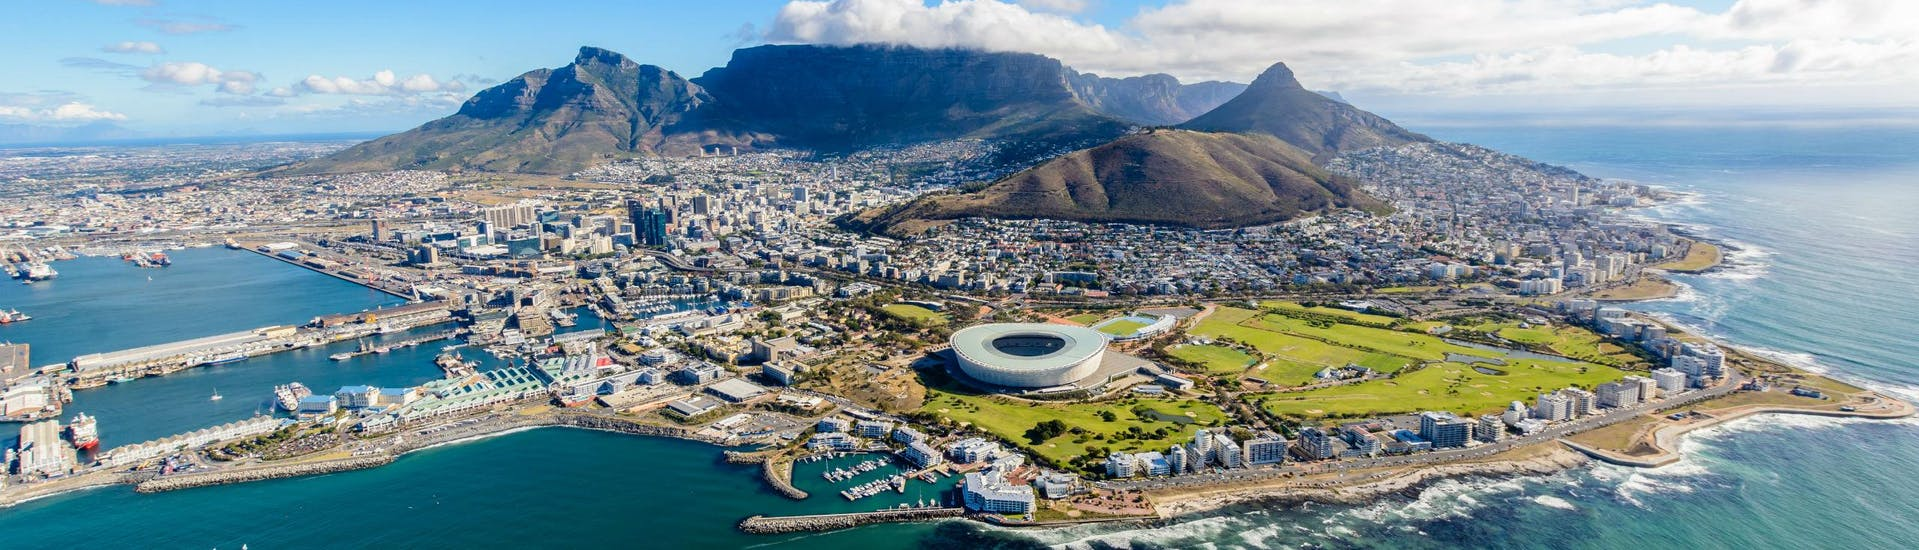 An aereal view of Cape Town, where visitors can go paragliding and fly across the famous Table Mountain.